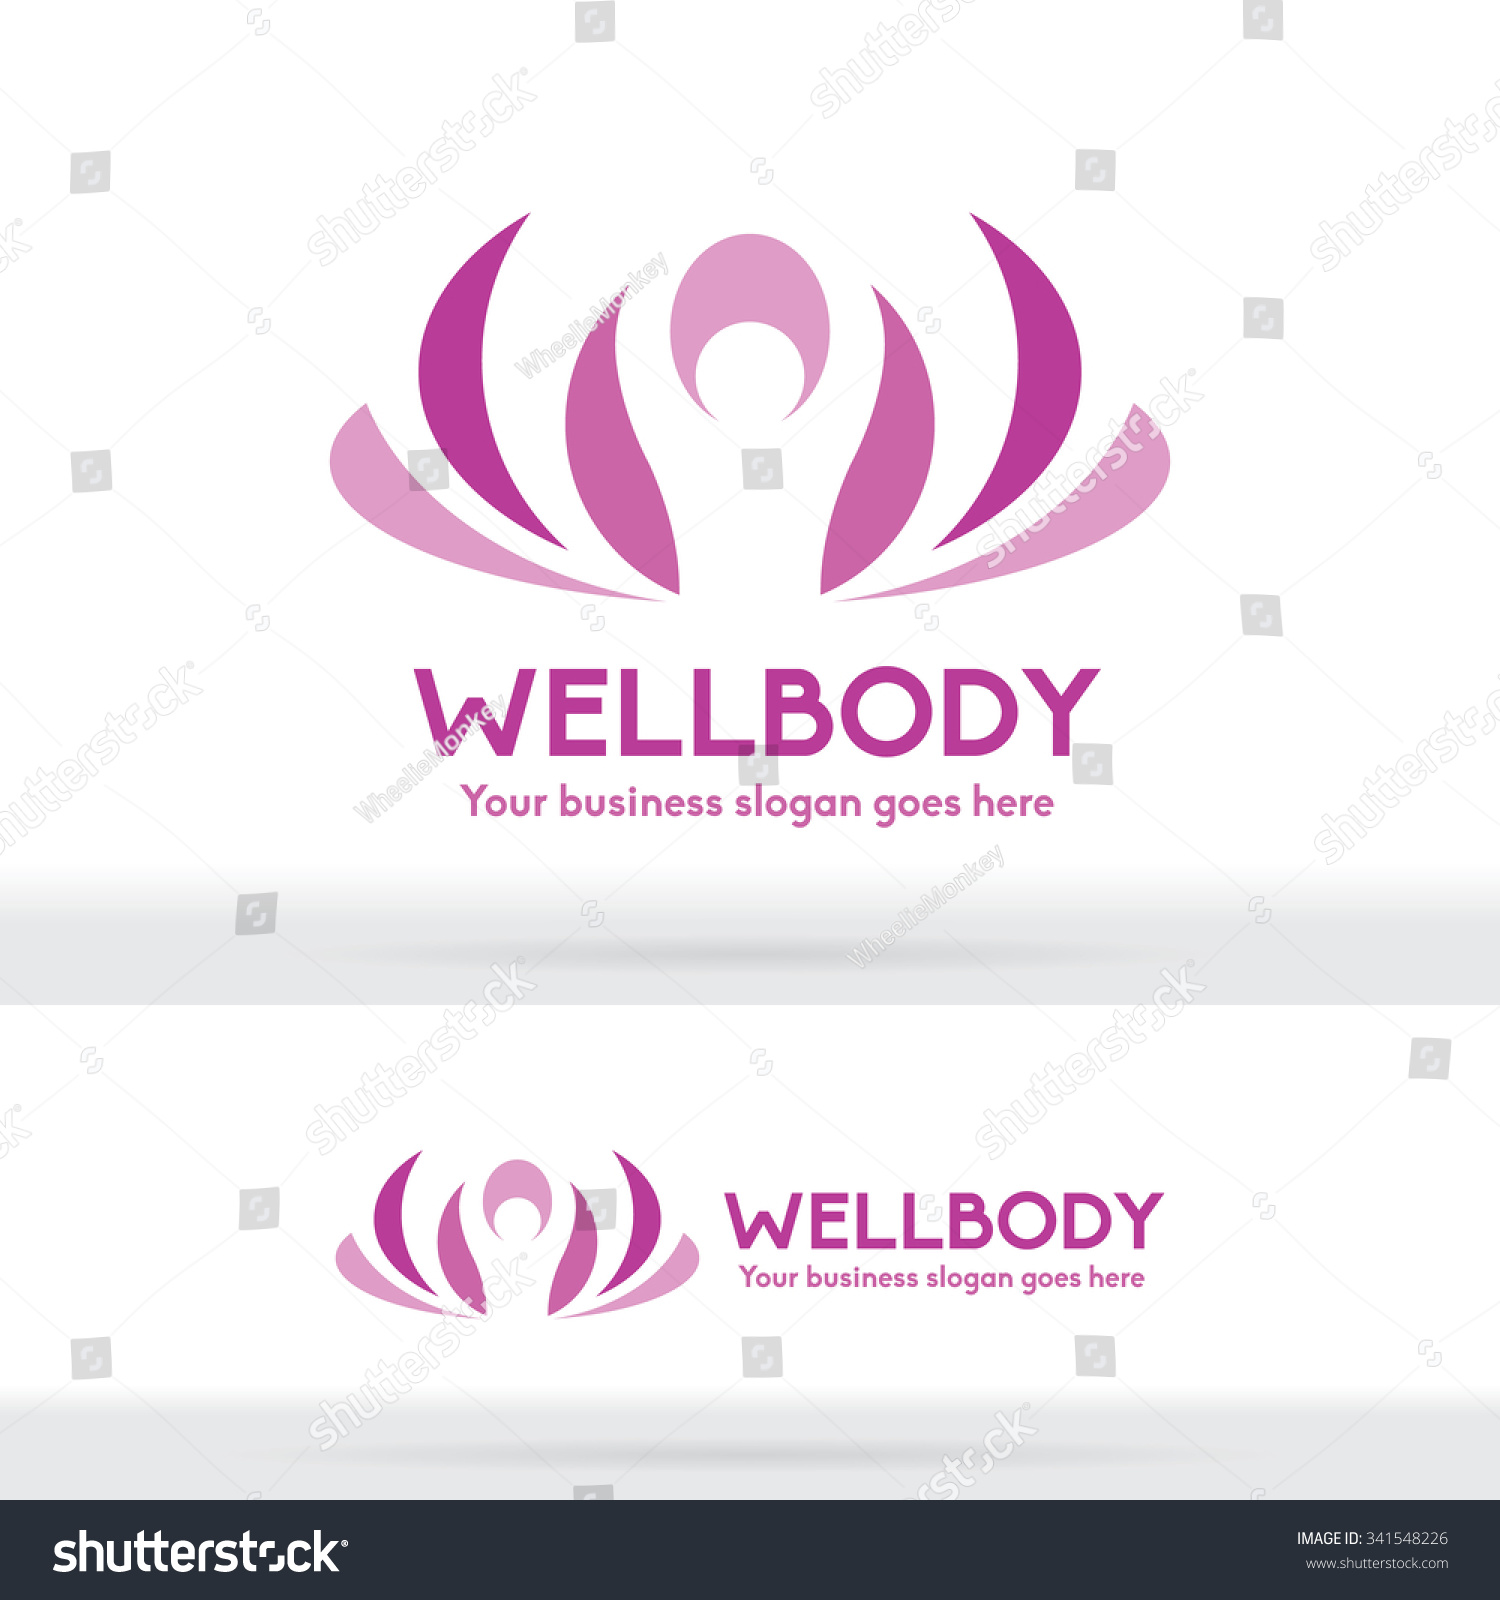 Well Body Fitness Logo Cosmetic Brand Identity For Spa Product And Beauty Salon Business